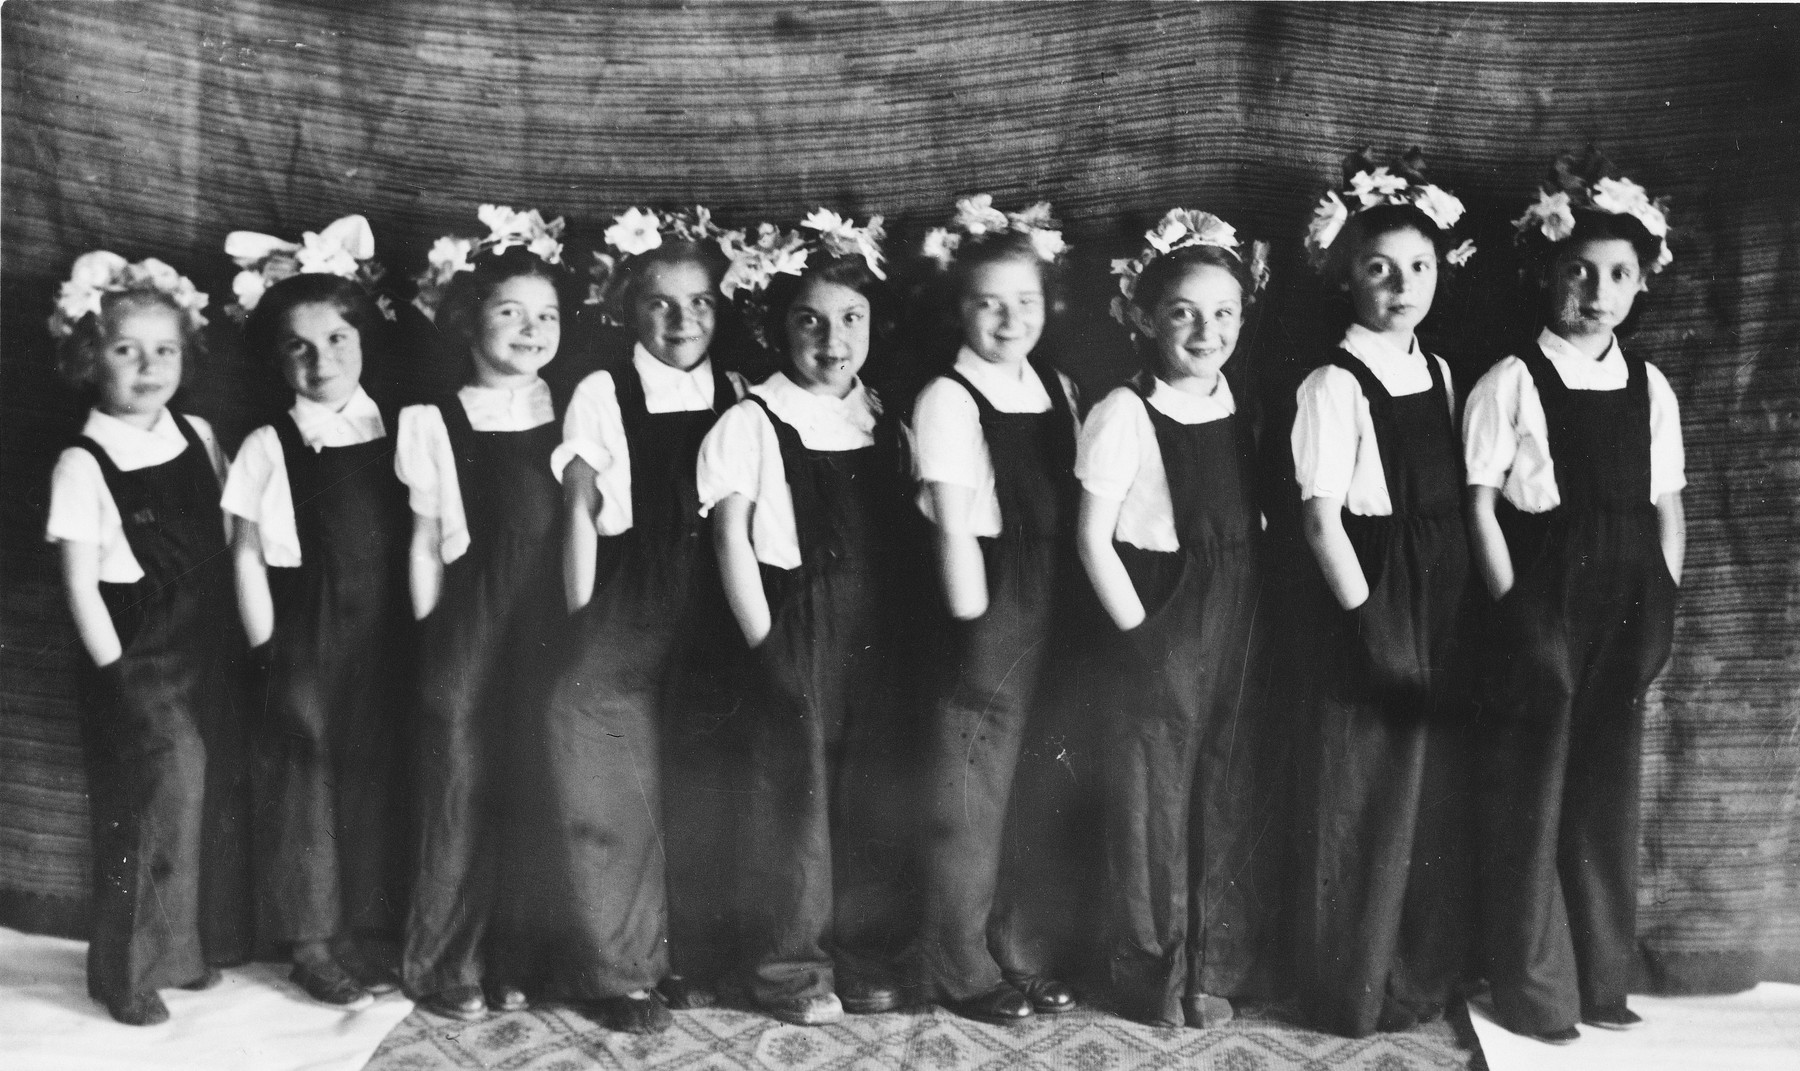 Young girls, dressed in overalls and with flowers in their hair, put on a school performance at the Novaky labor camp.  Among those pictured are Mira Frenkel (third from right) and twin sisters (first and second from the right).